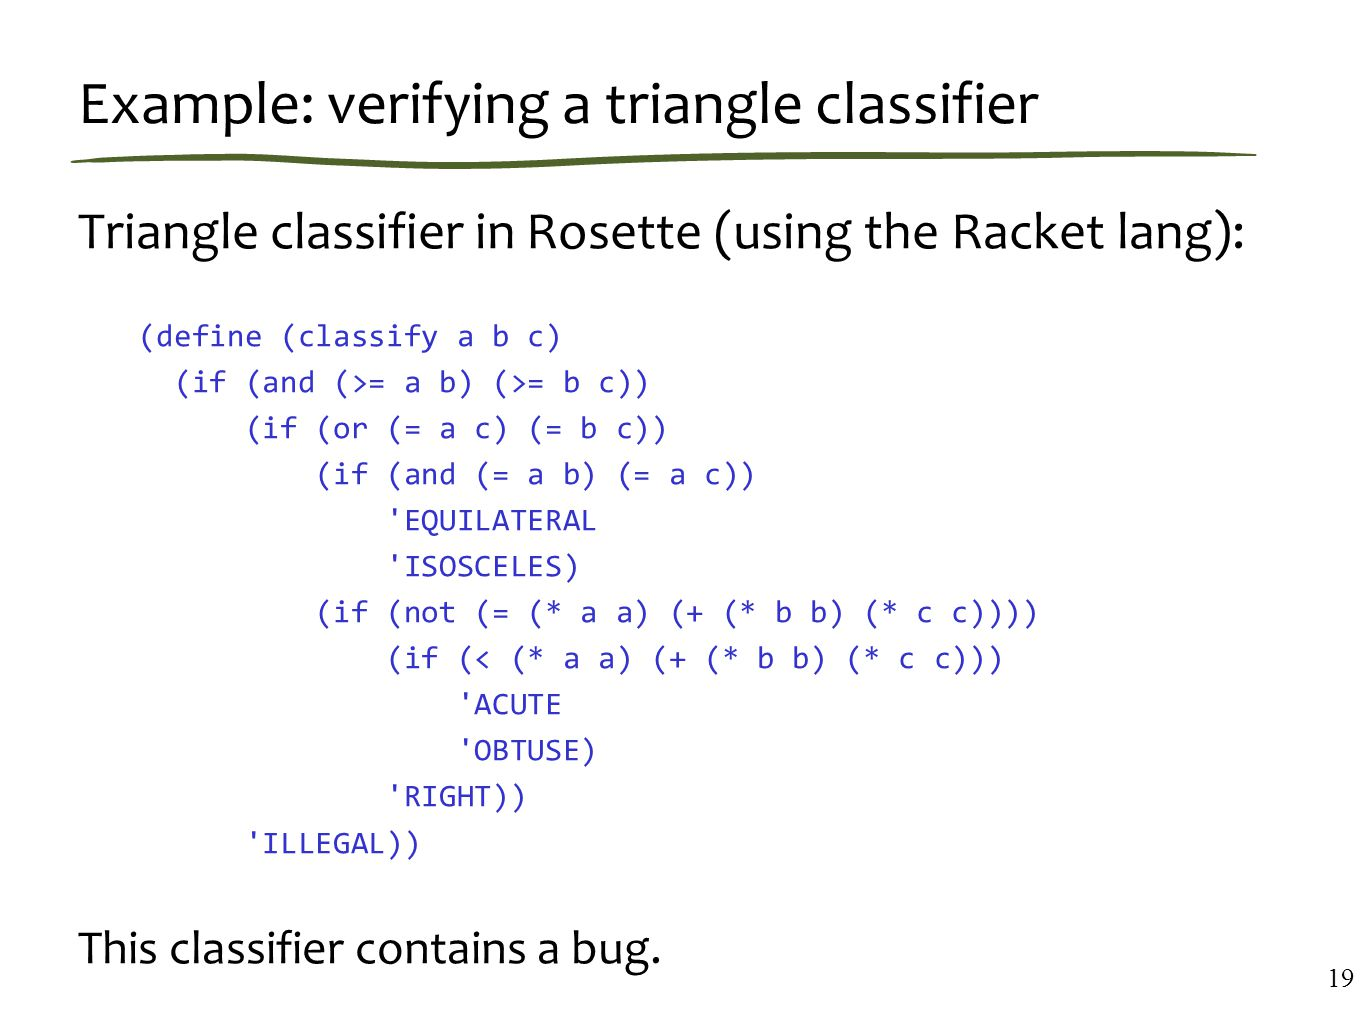 Example: verifying a triangle classifier Triangle classifier in Rosette (using the Racket lang): (define (classify a b c) (if (and (>= a b) (>= b c)) (if (or (= a c) (= b c)) (if (and (= a b) (= a c)) EQUILATERAL ISOSCELES) (if (not (= (* a a) (+ (* b b) (* c c)))) (if (< (* a a) (+ (* b b) (* c c))) ACUTE OBTUSE) RIGHT)) ILLEGAL)) This classifier contains a bug.